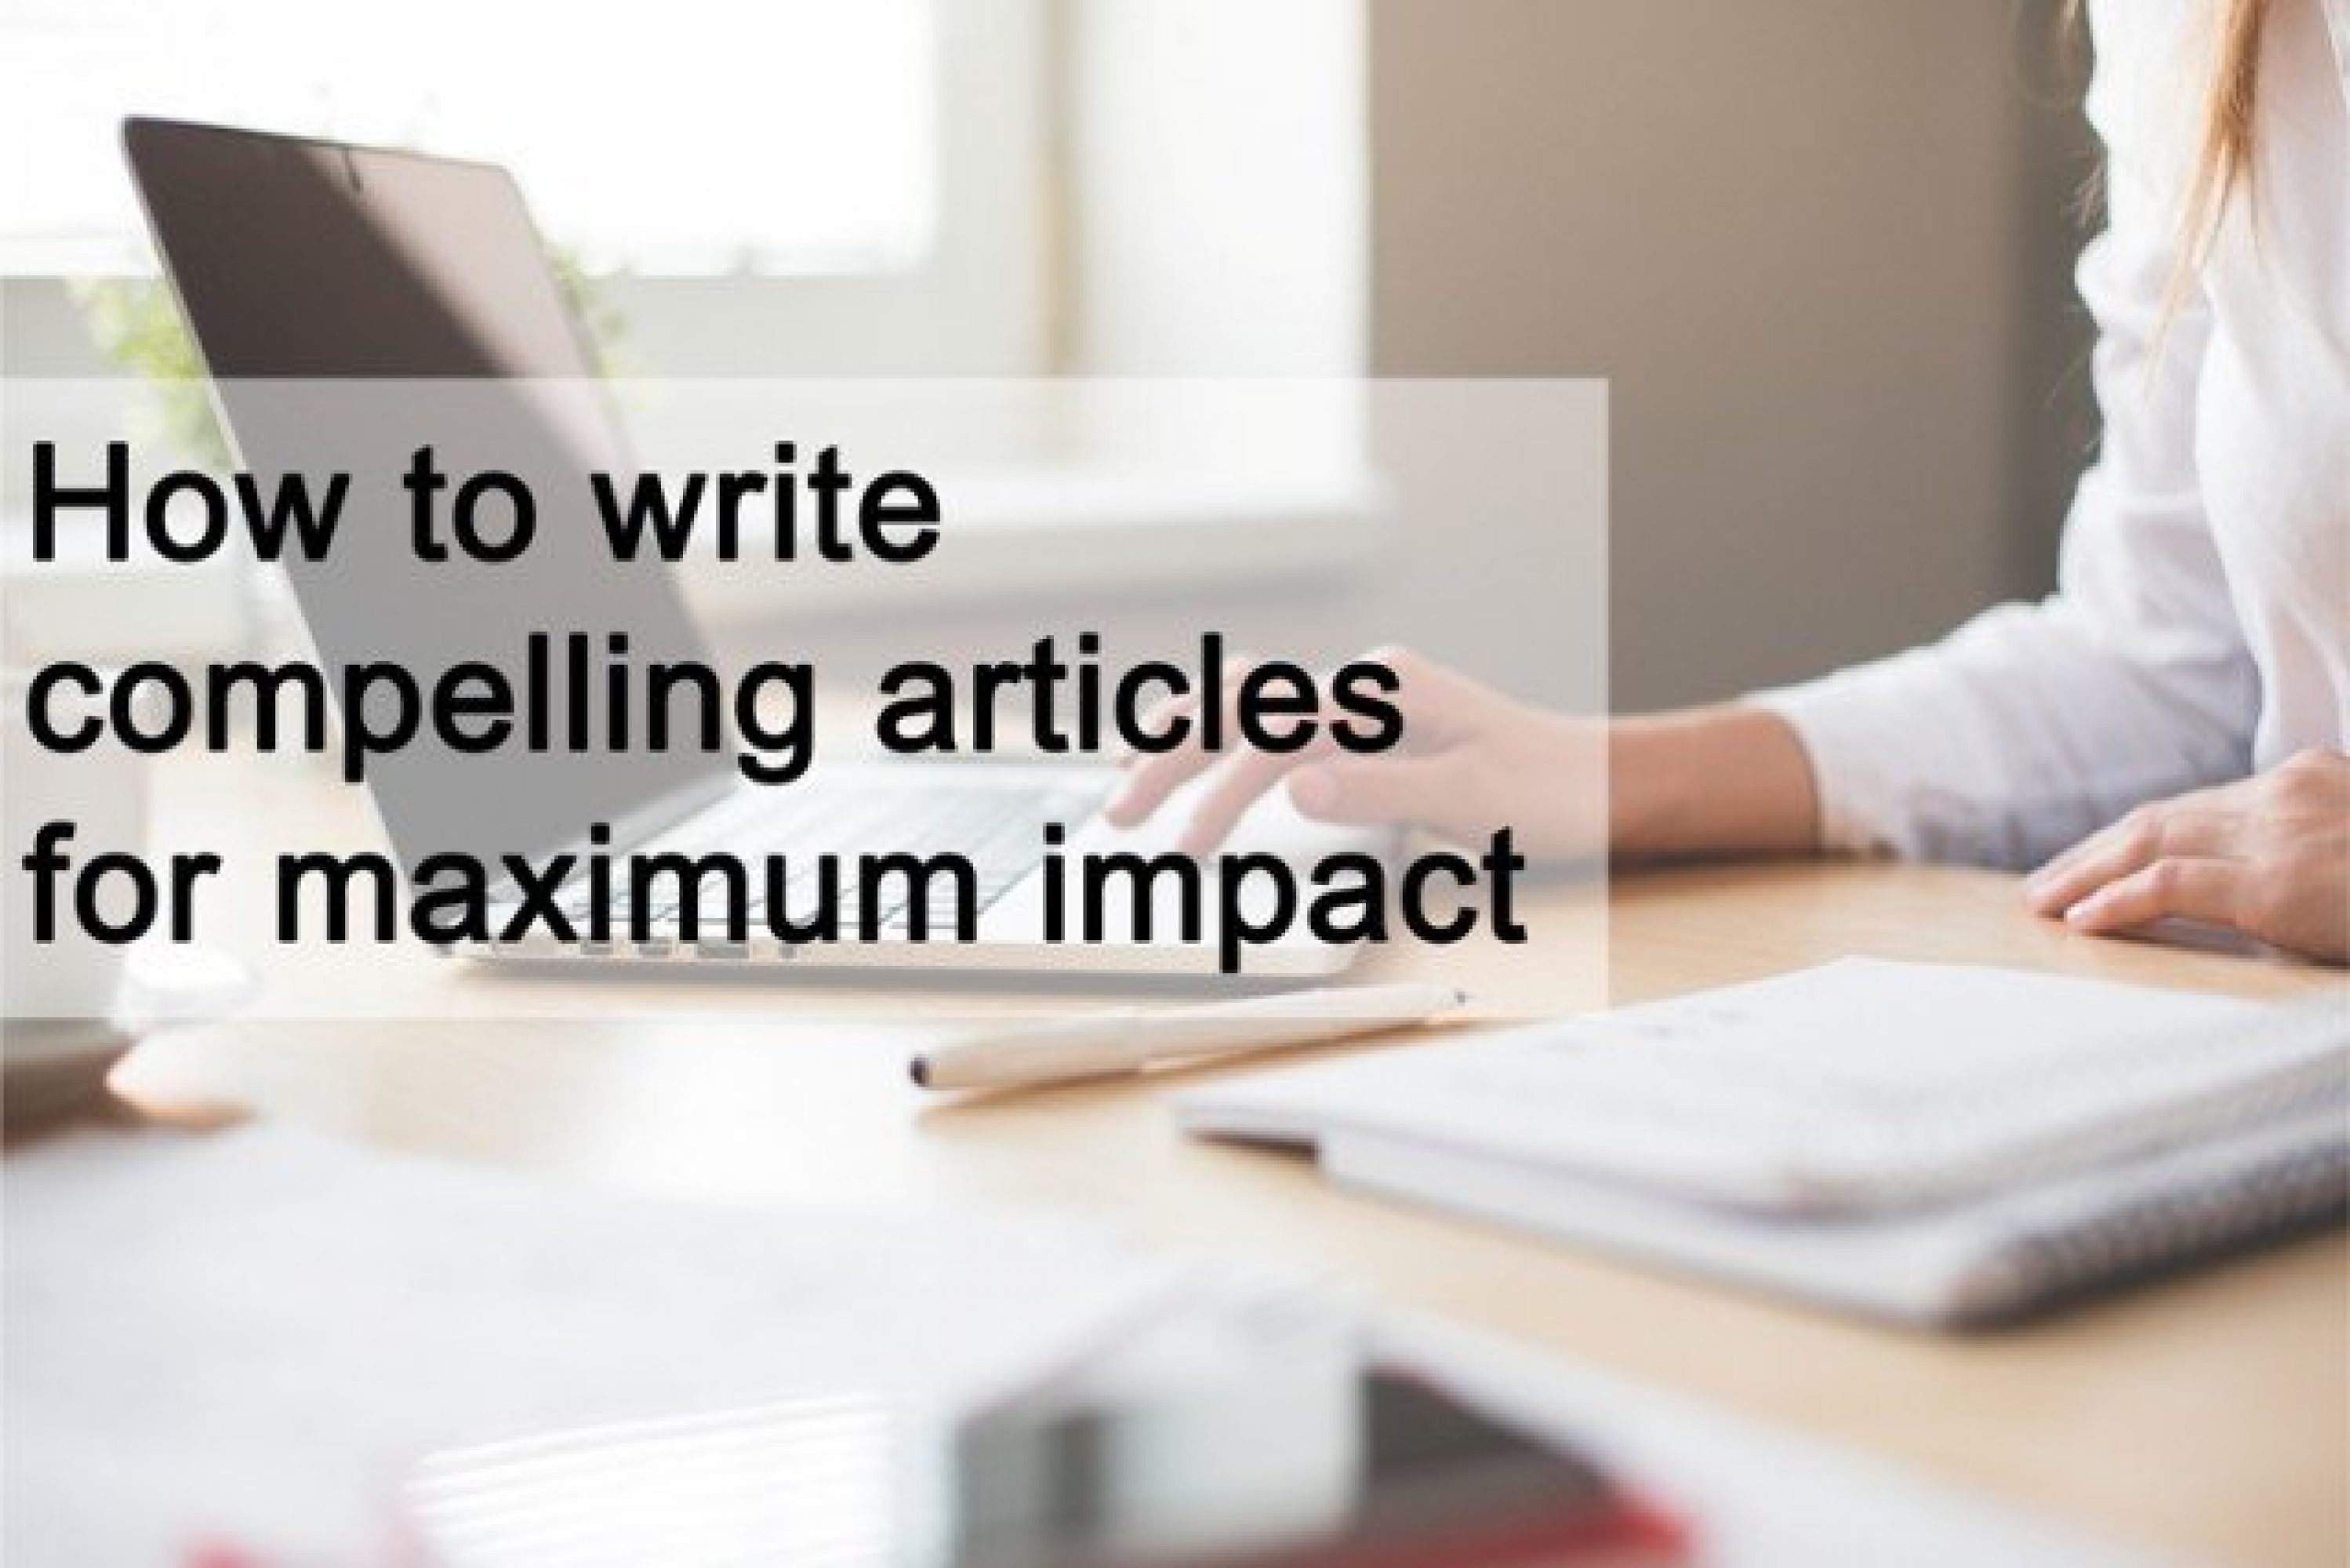 How to write compelling articles for maximum impact